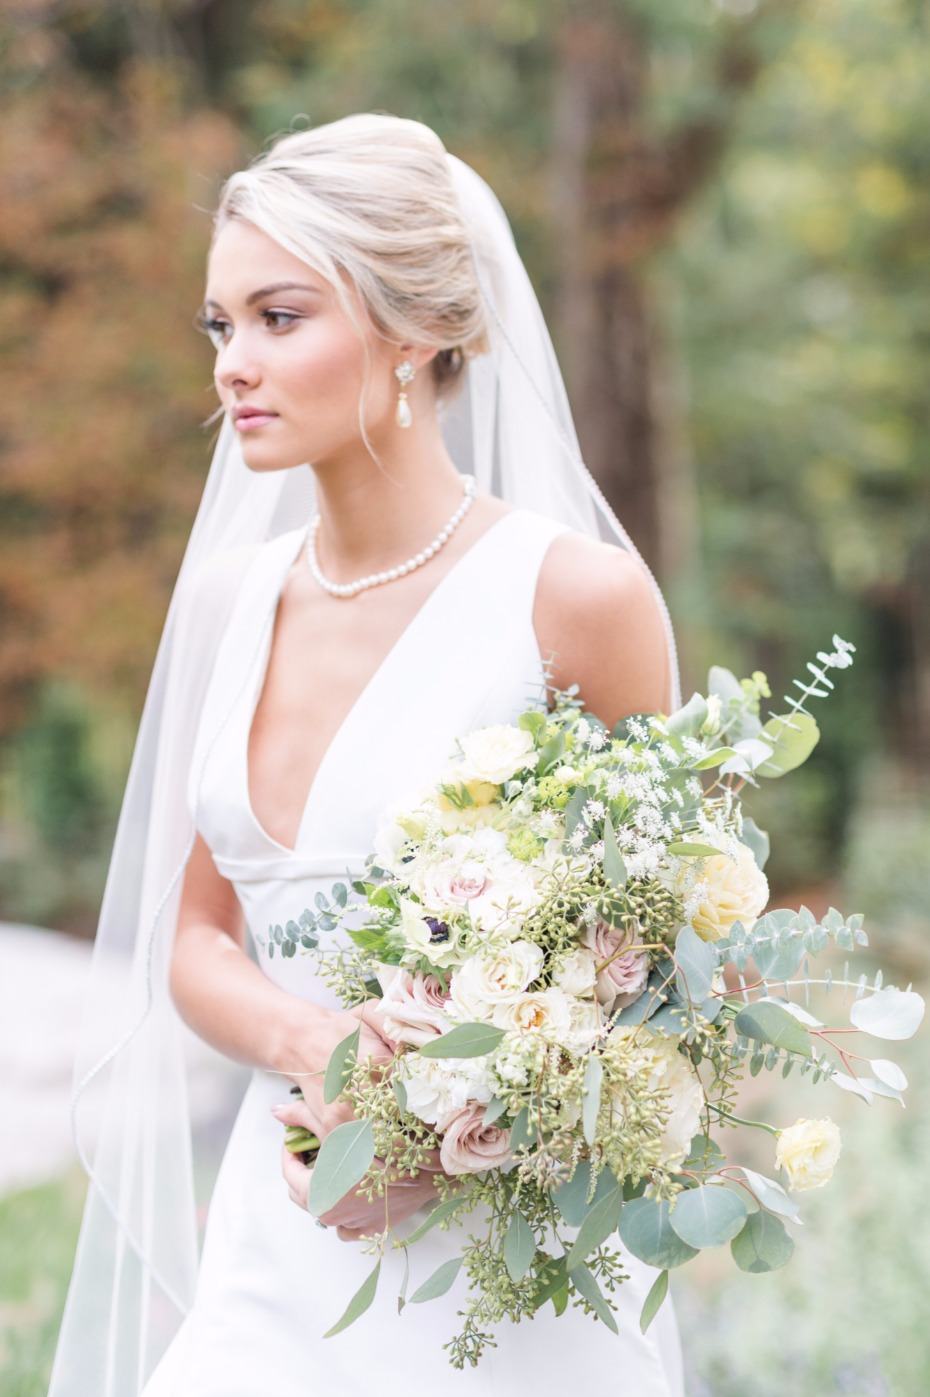 chic and put together bridal style